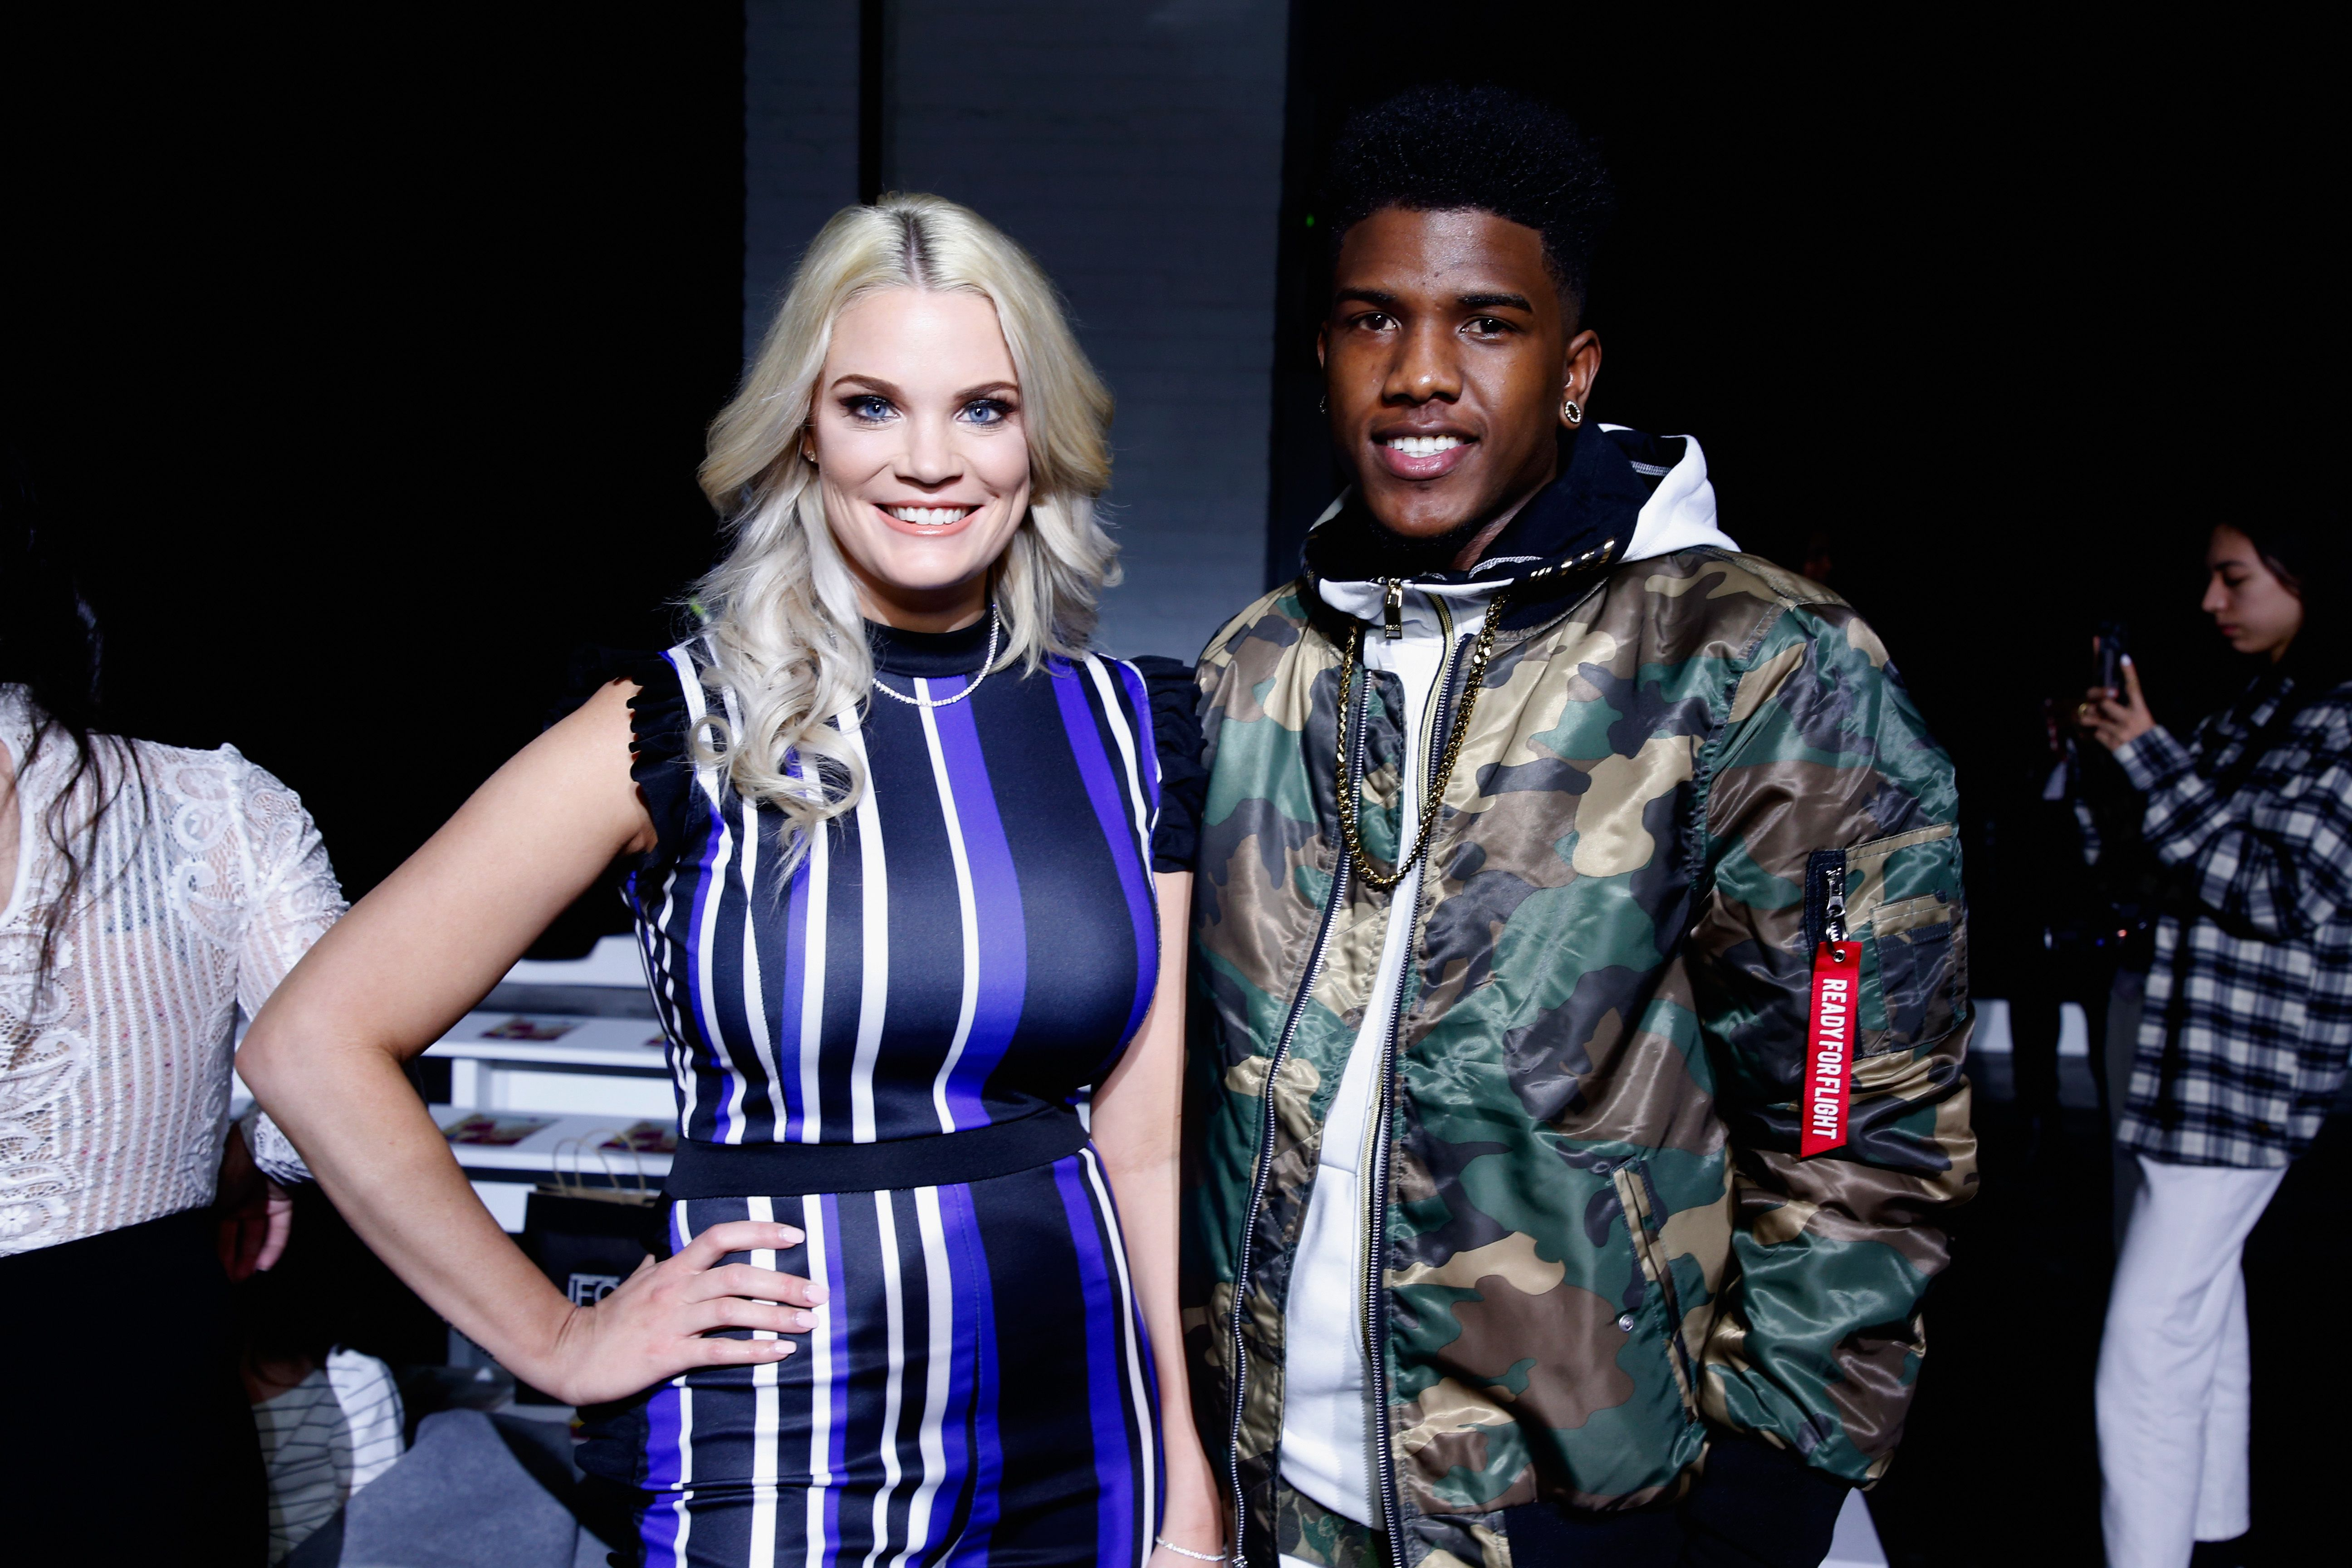 Ashley Martson and Jay Smith at a fashion show together